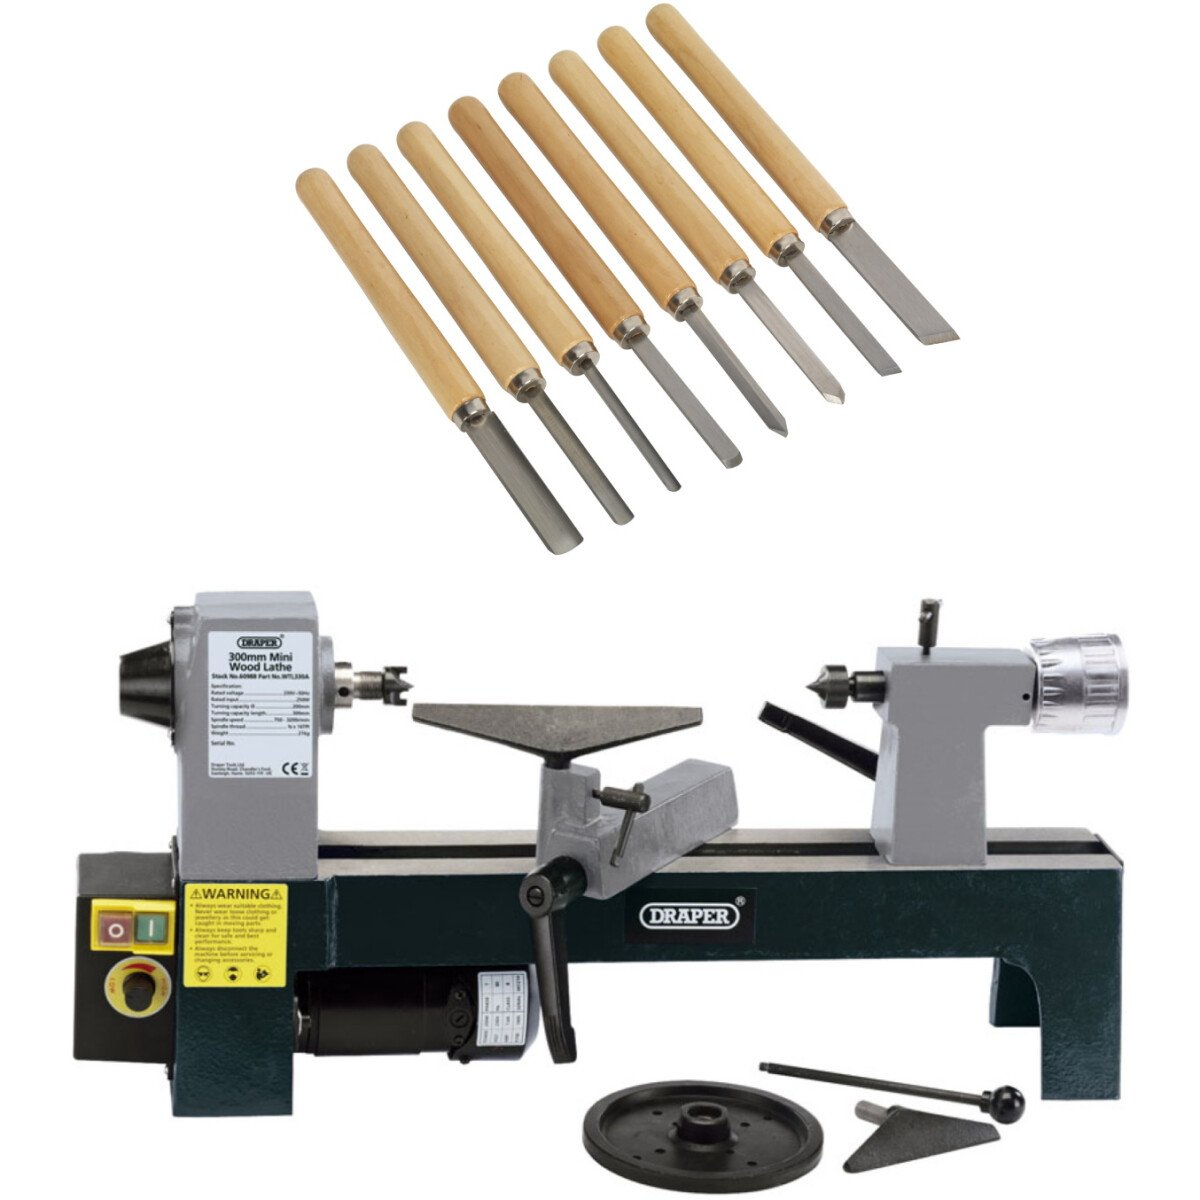 Draper 60988 WTL330A 250W 230V Variable Speed Mini Wood Lathe with 8 Piece Wood Turning Chisels